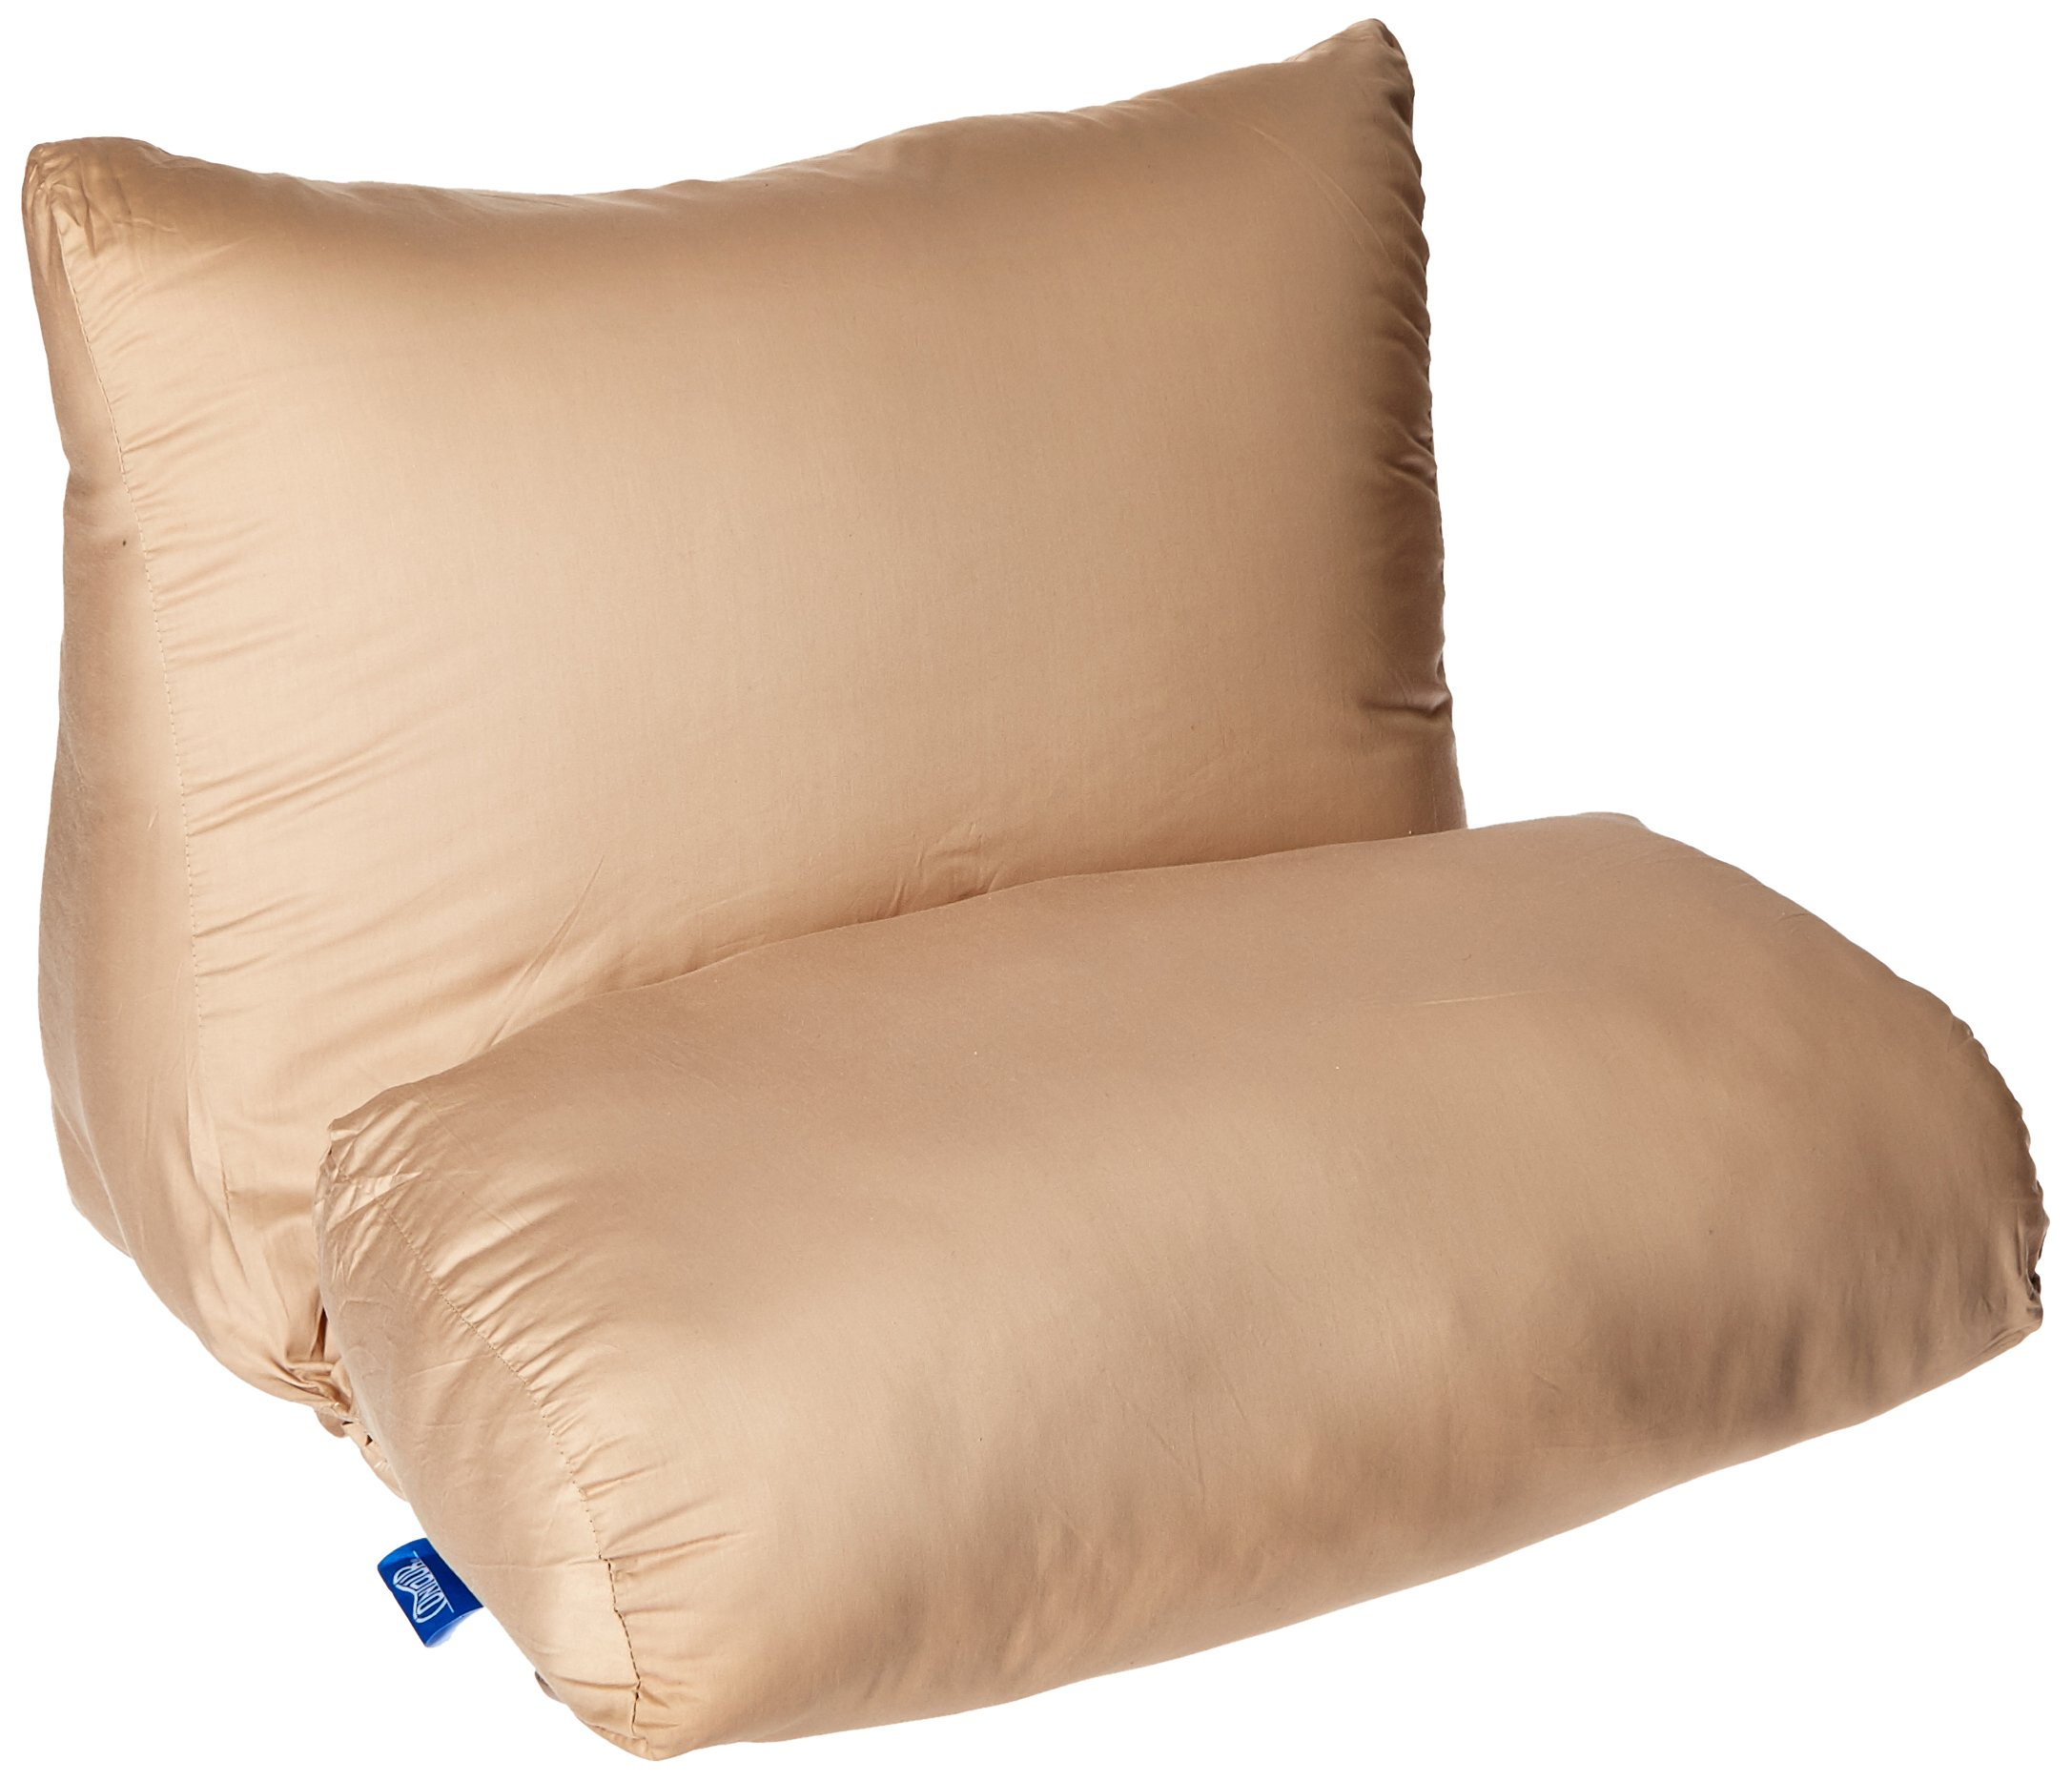 Contour Products 10in1 Flip Pillow Cover, Beige